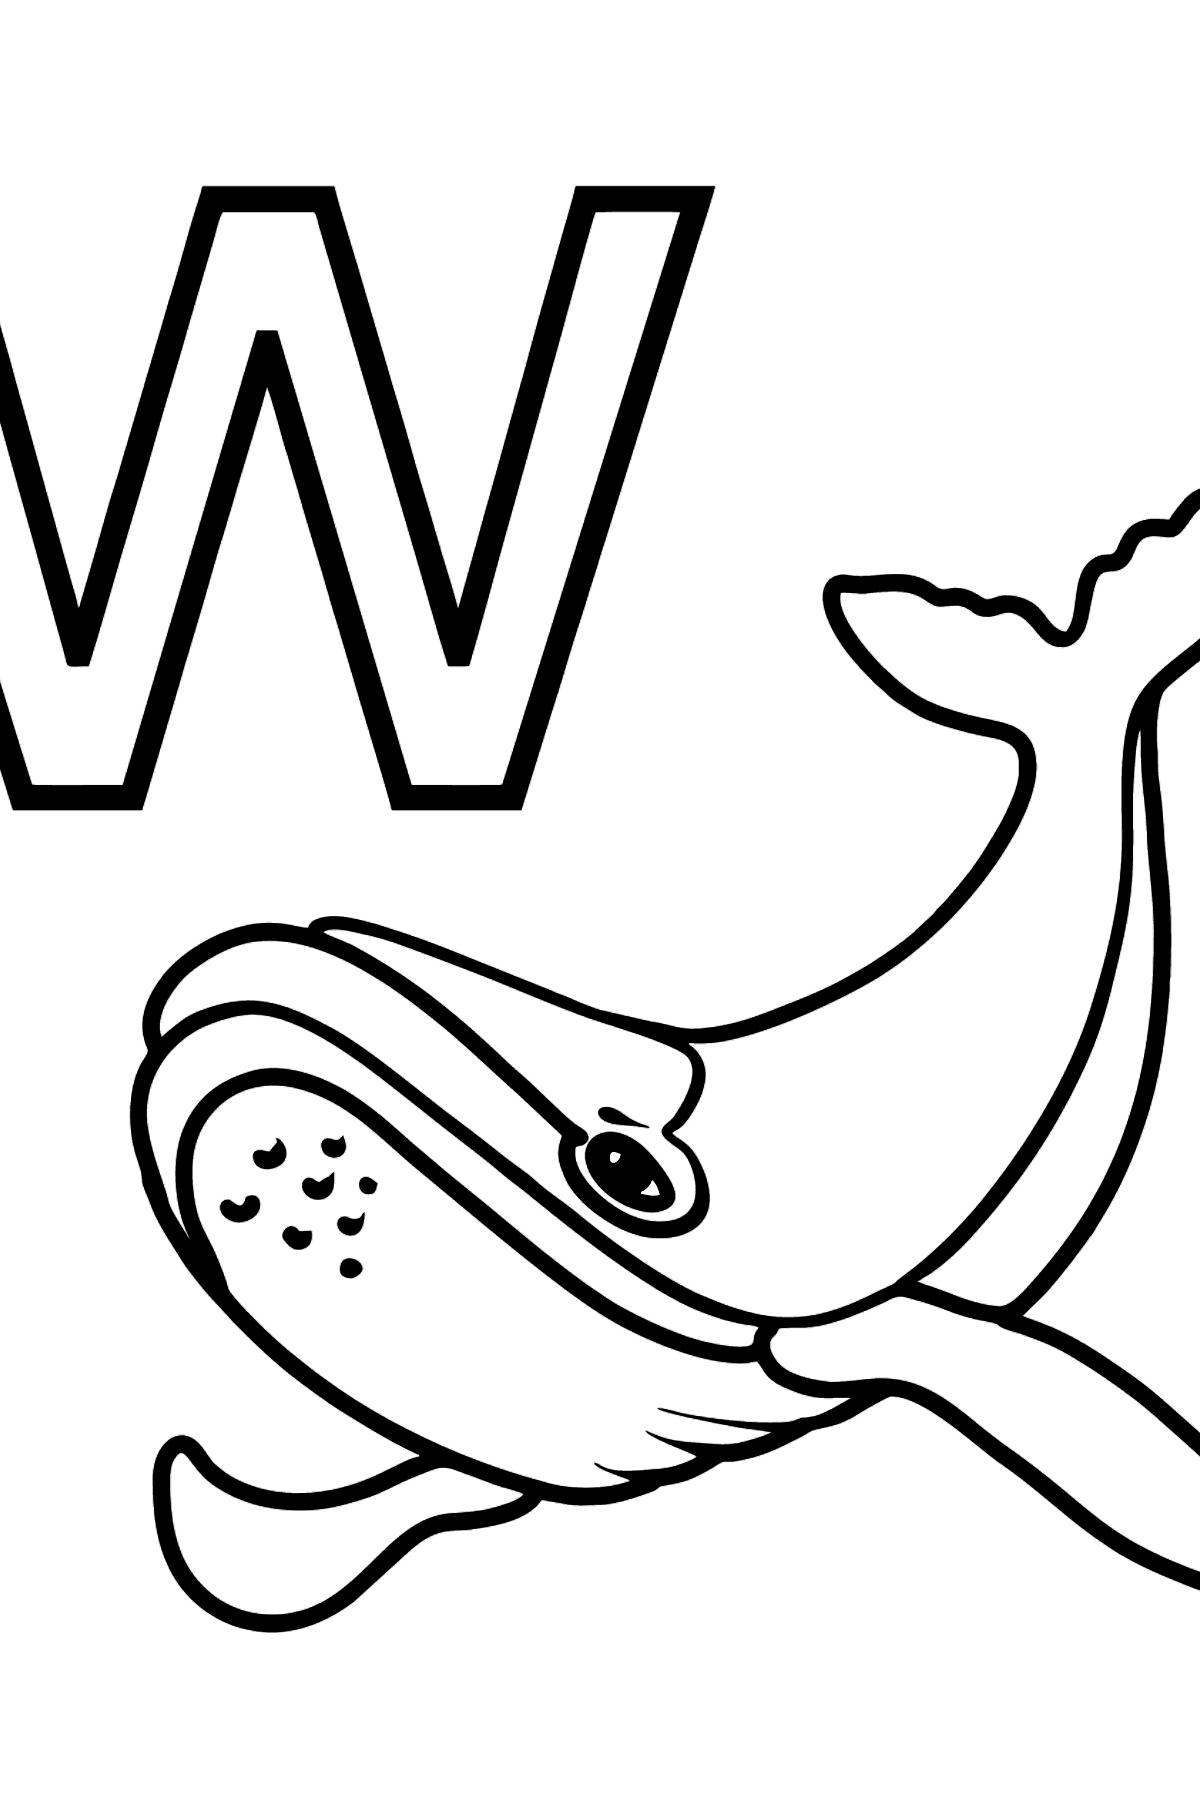 German Letter W coloring pages - WAL - Coloring Pages for Kids